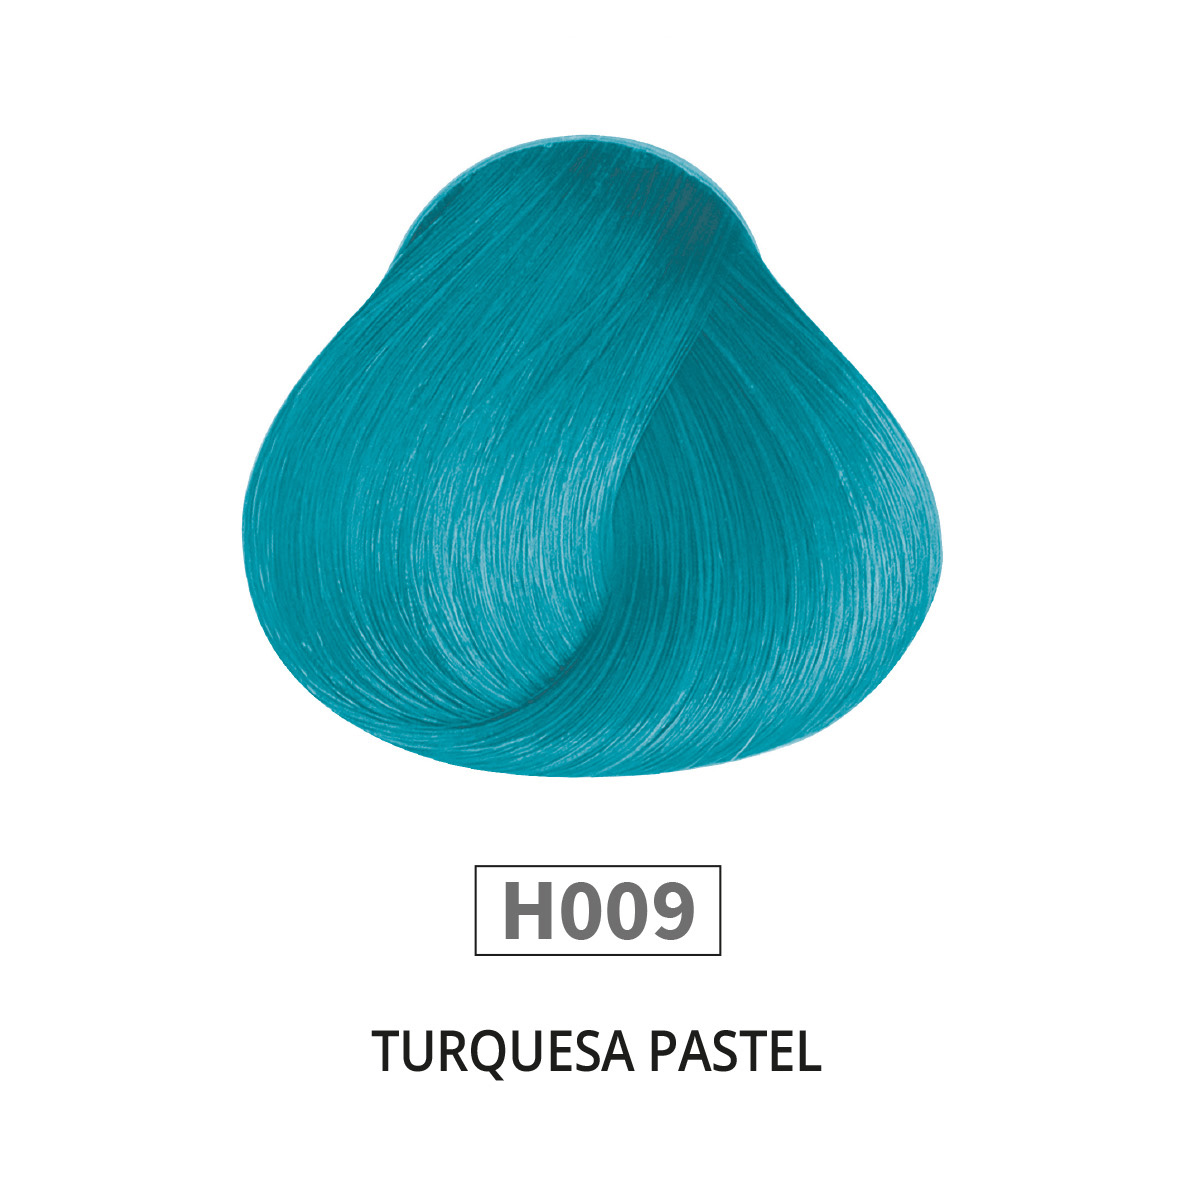 Turquesa H009 - Yanguas Professional